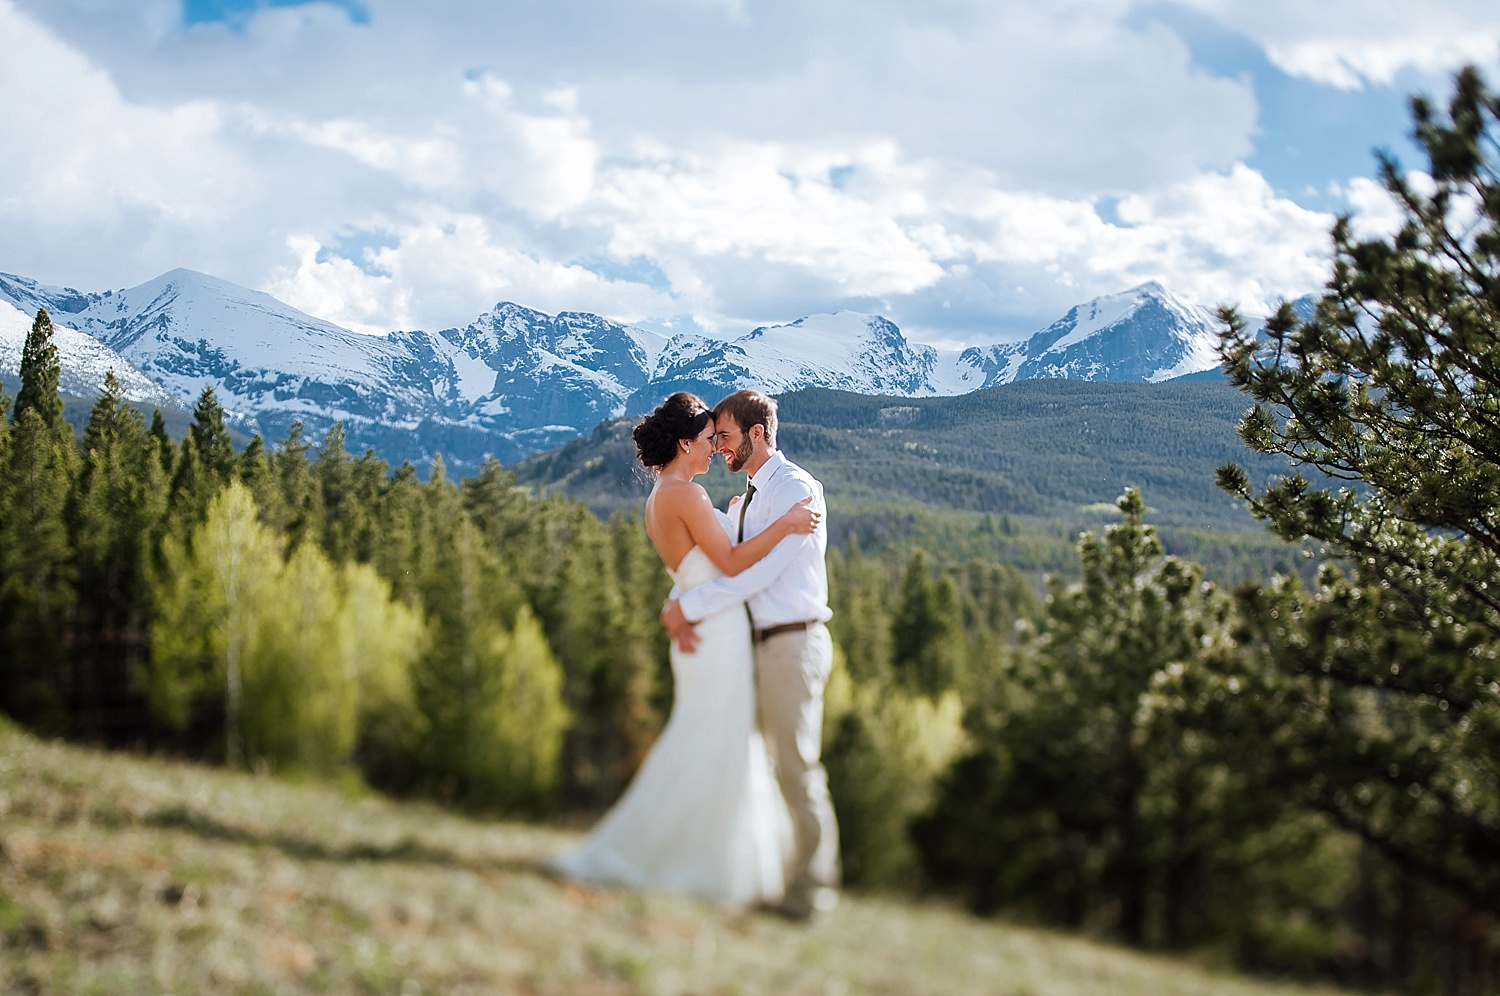 Rocky Mountain National Park is a wonderful place to have a Mountain wedding! Photo by Maddie Mae Photography